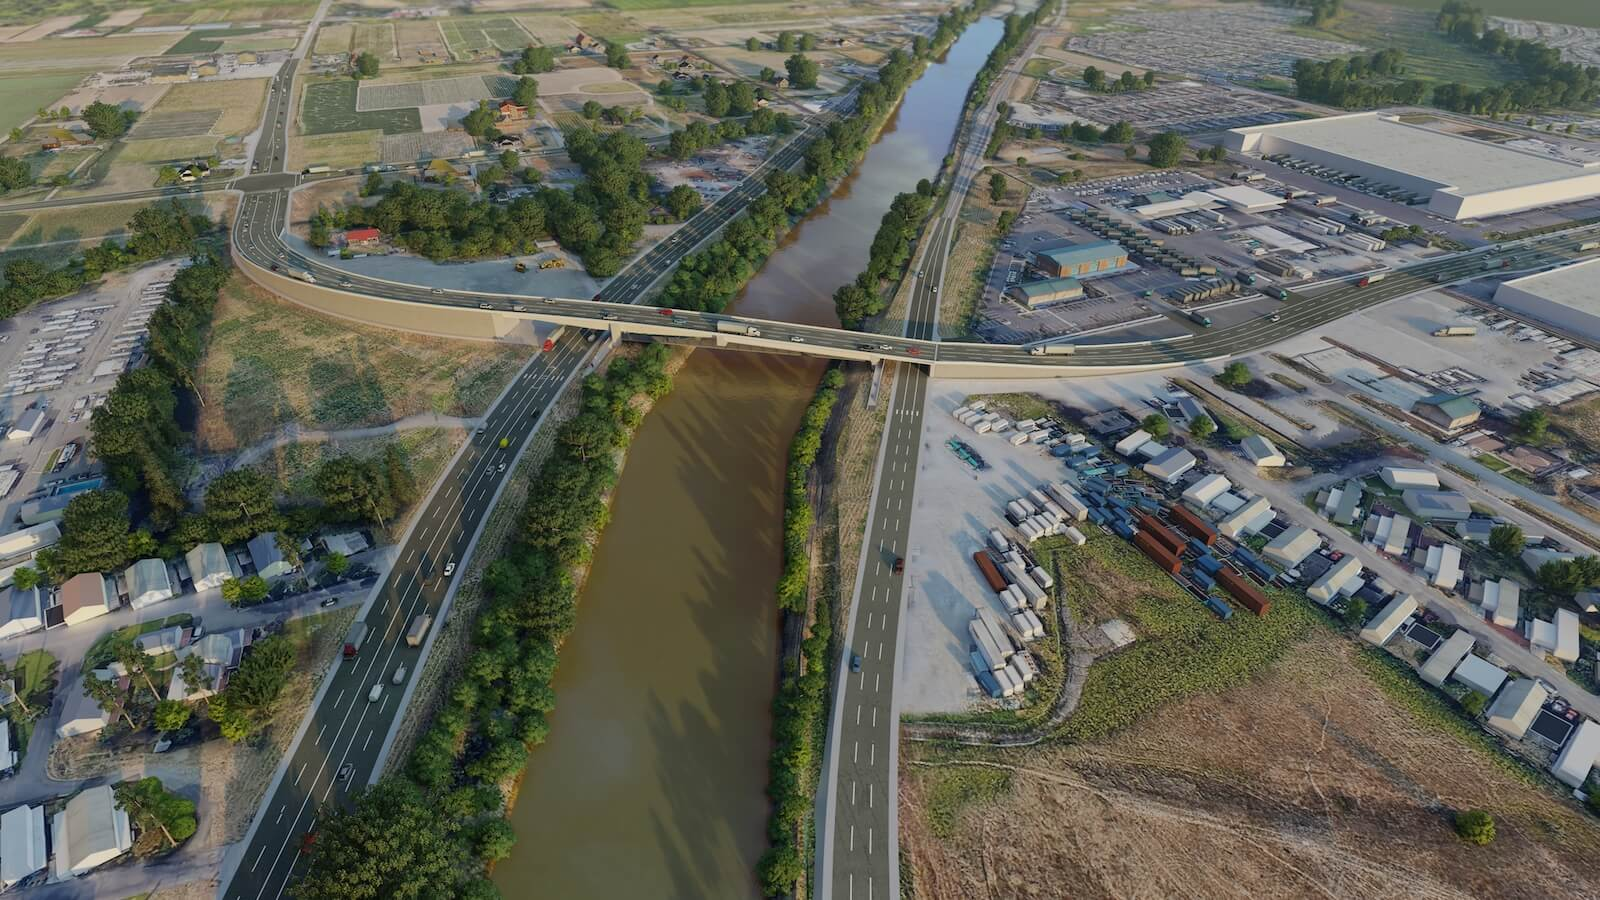 Visualization of the future bridge over the Puyallup River